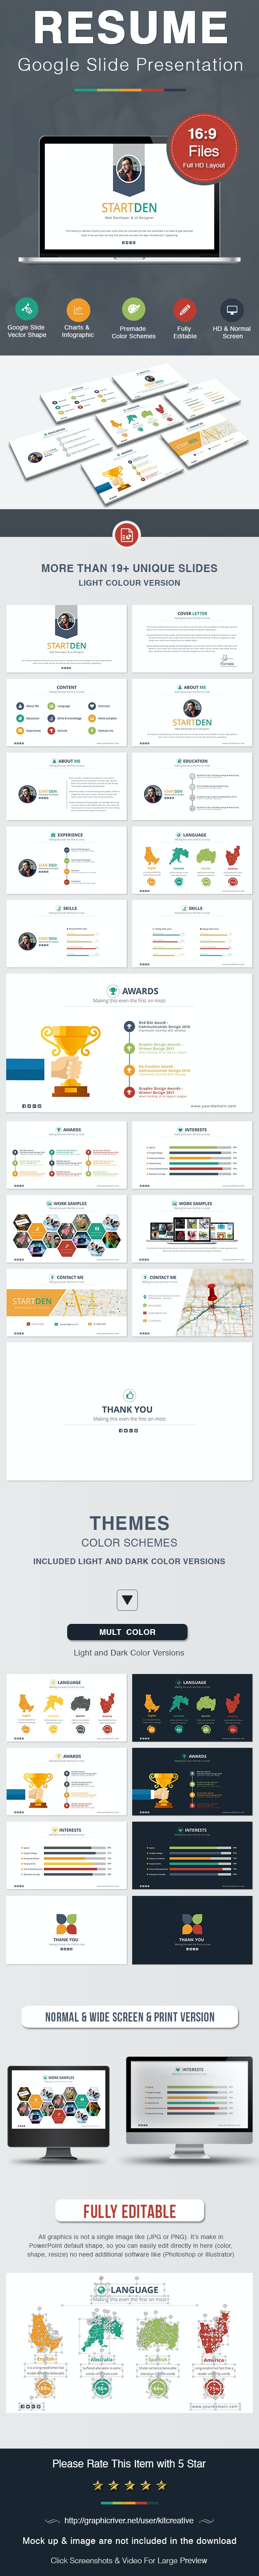 Resume Google Slide by KitCreative | GraphicRiver